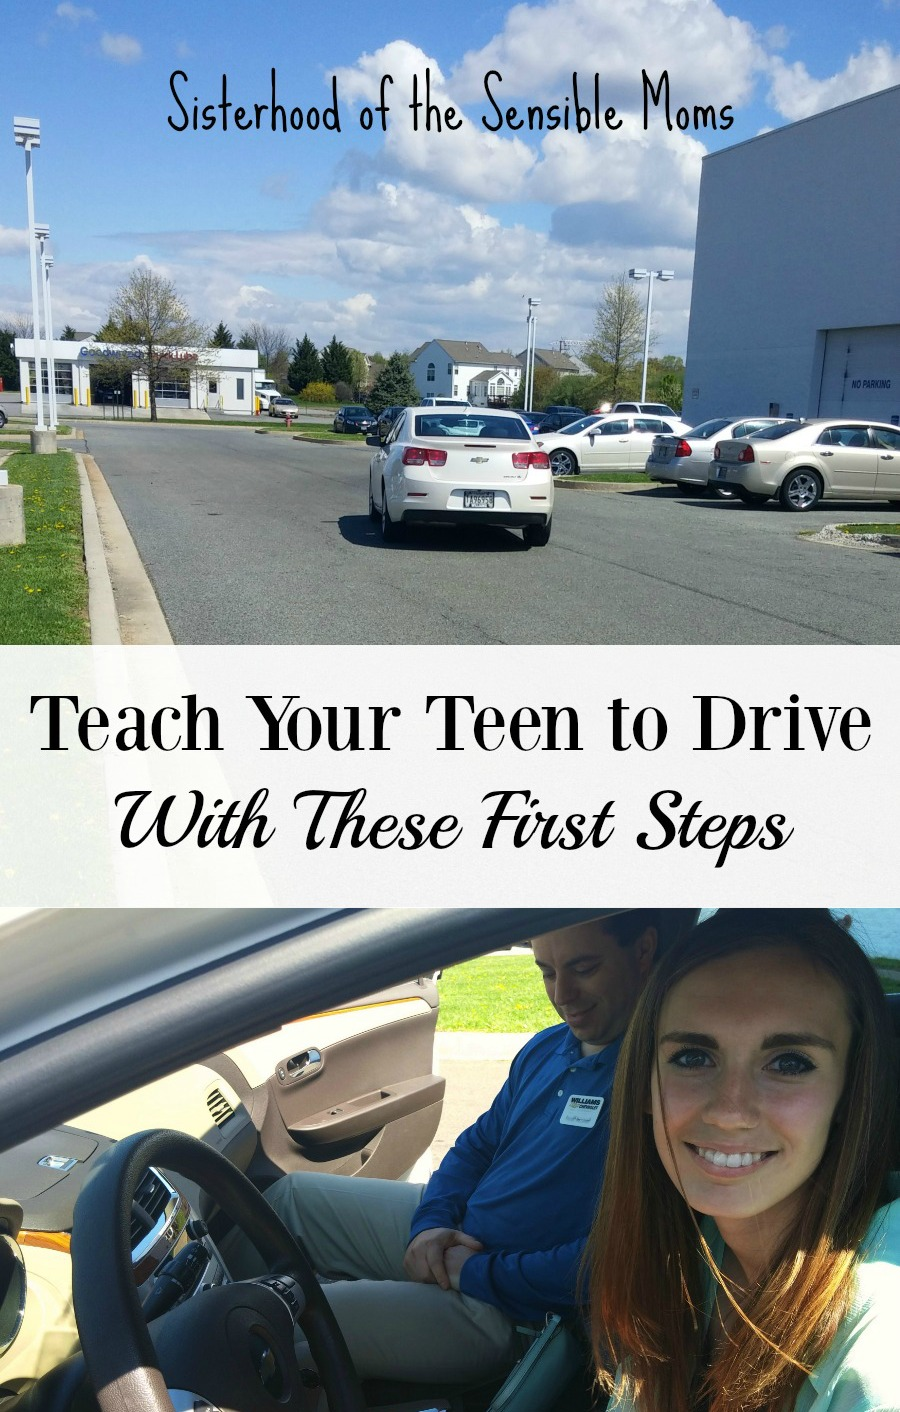 Teach your teen to drive with these first steps. Tips and tutorials because the basics may be even more basic than you recall. Learn also about the role of muscle memory. |Parenting | Sisterhood of the Sensible Moms